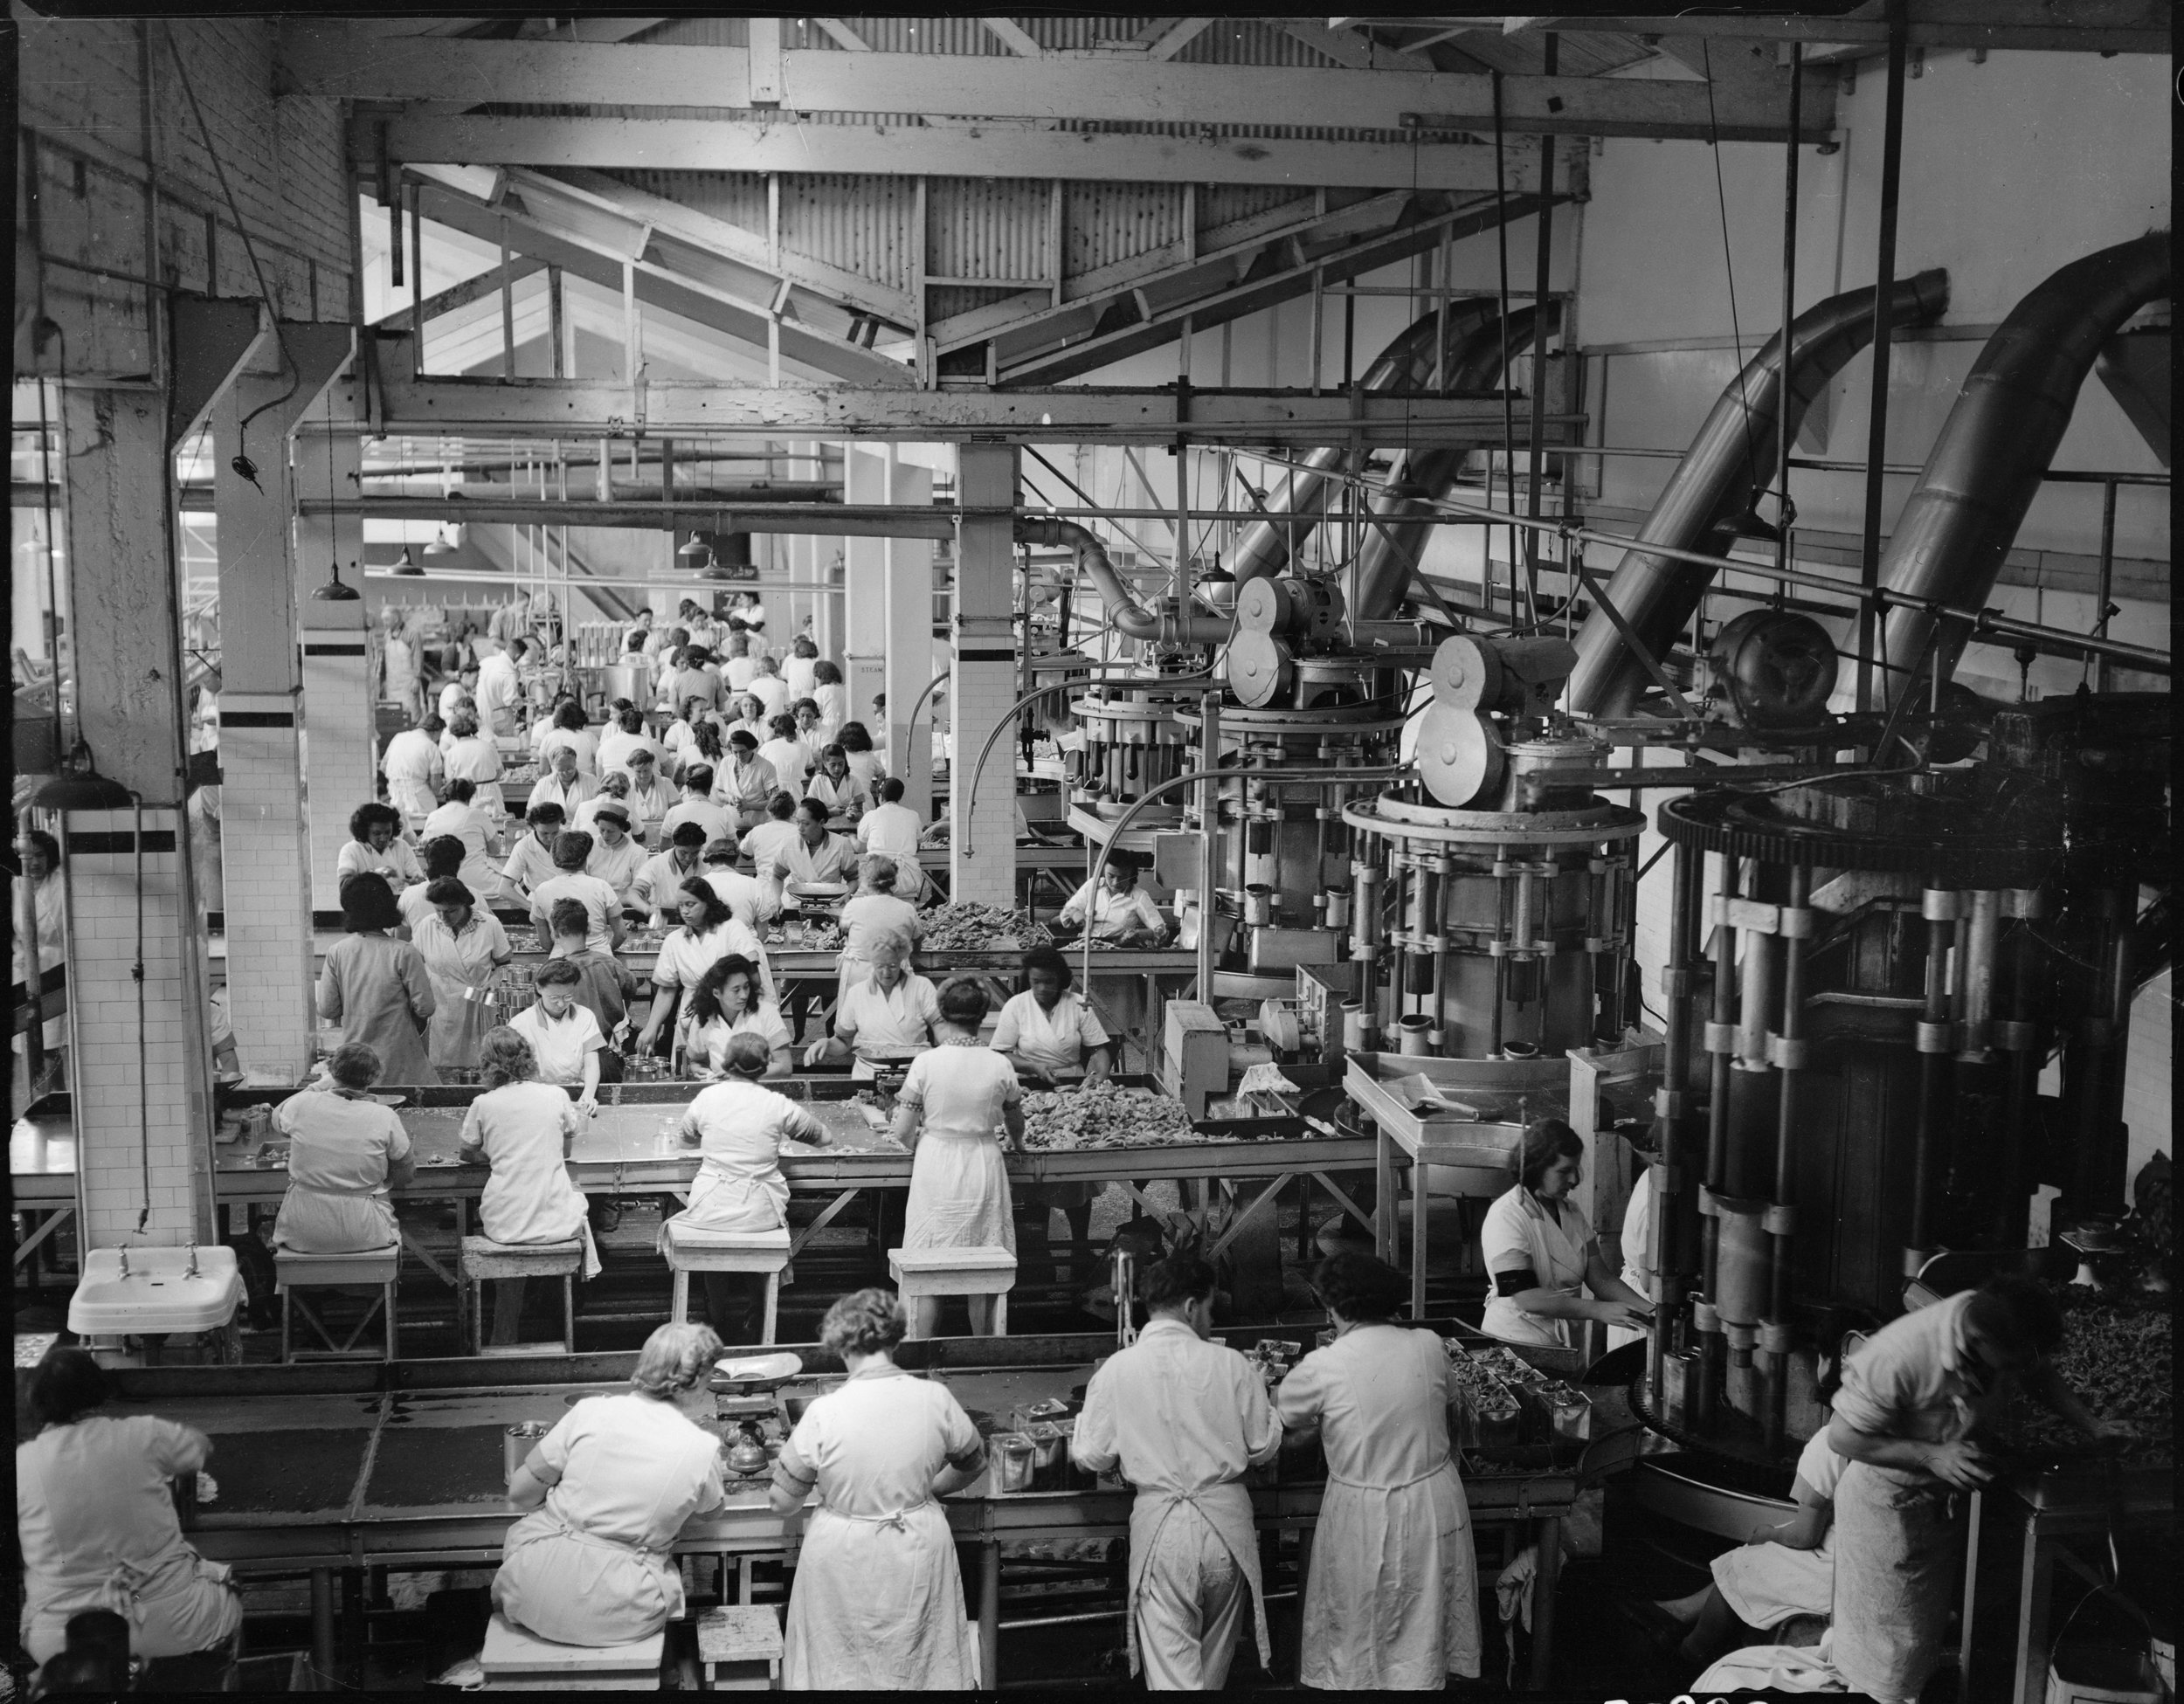 Walker, W (Mr), 1940s-1950s. Interior of cannery at Westfield Freezing Works, Otahuhu, Auckland. Tourist and Publicity. Ref: 1/2-034201-F. Alexander Turnbull Library, Wellington, New Zealand.